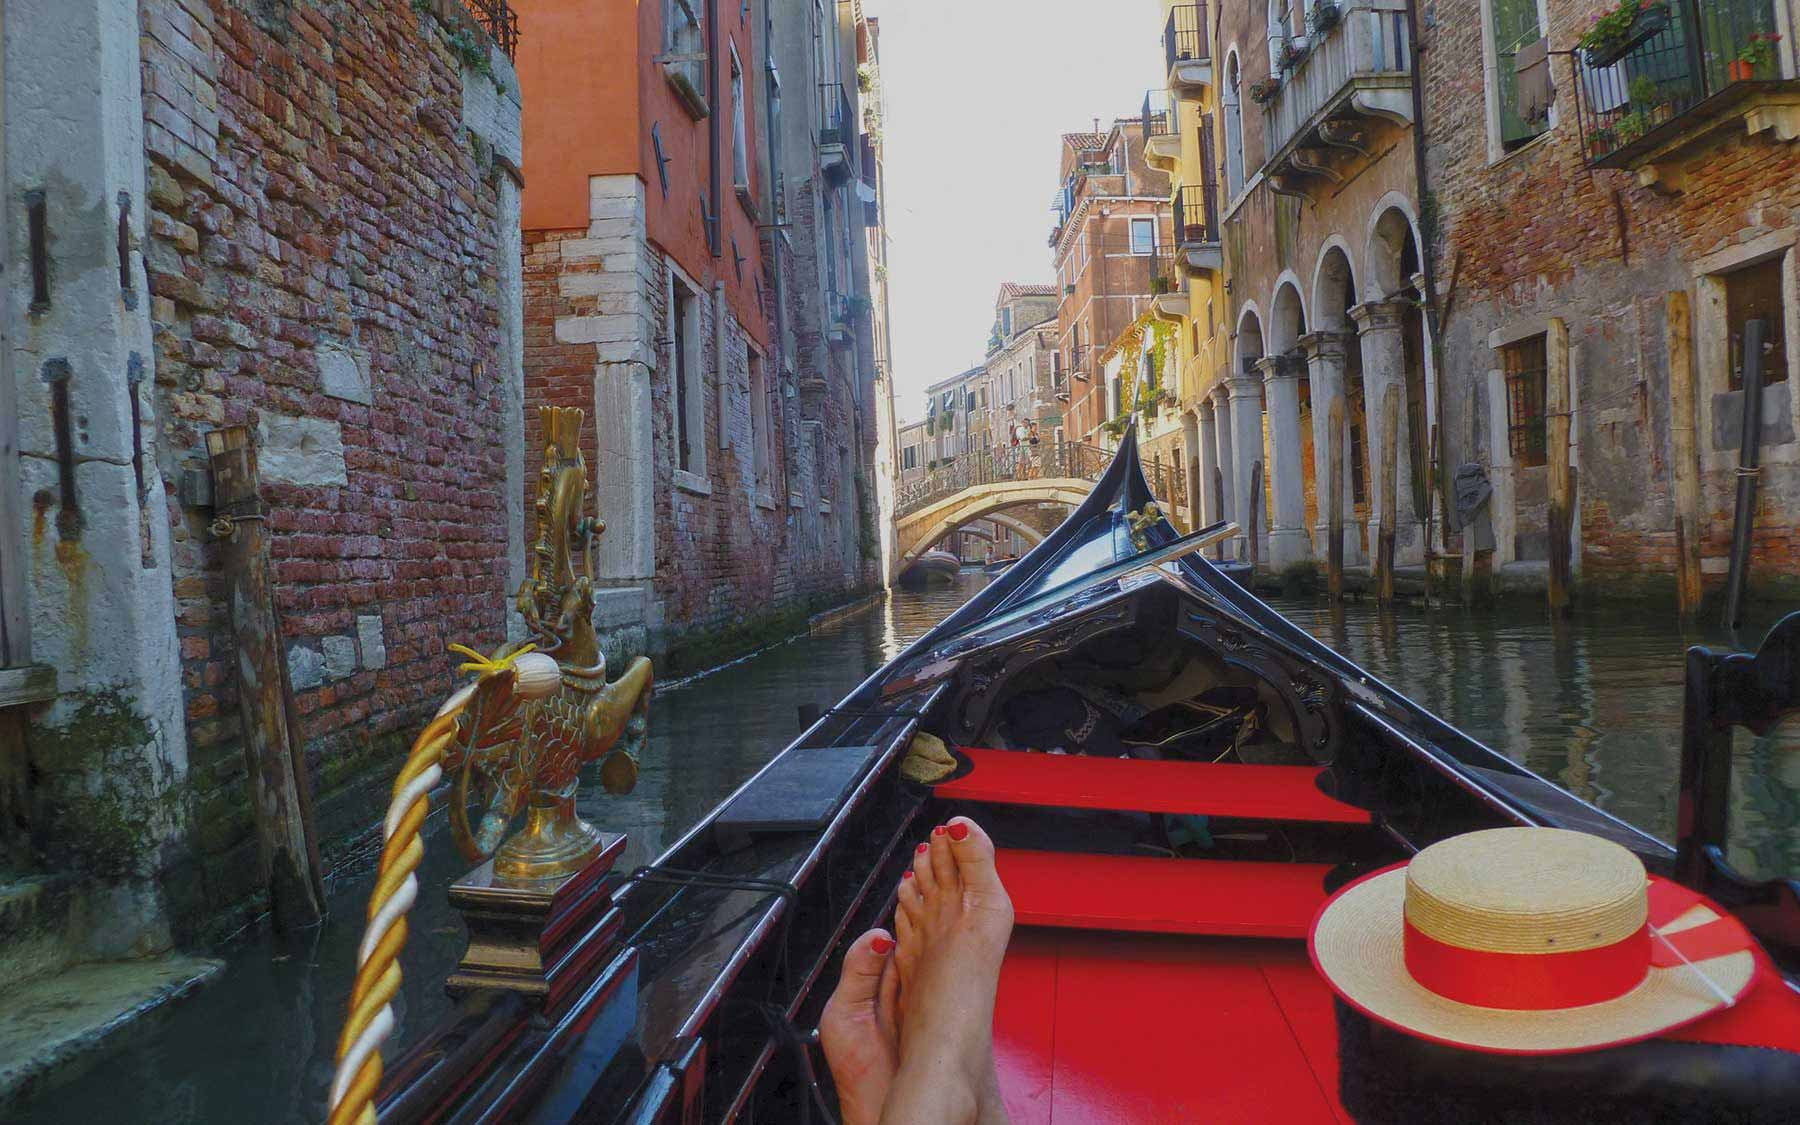 A laid back gondola ride